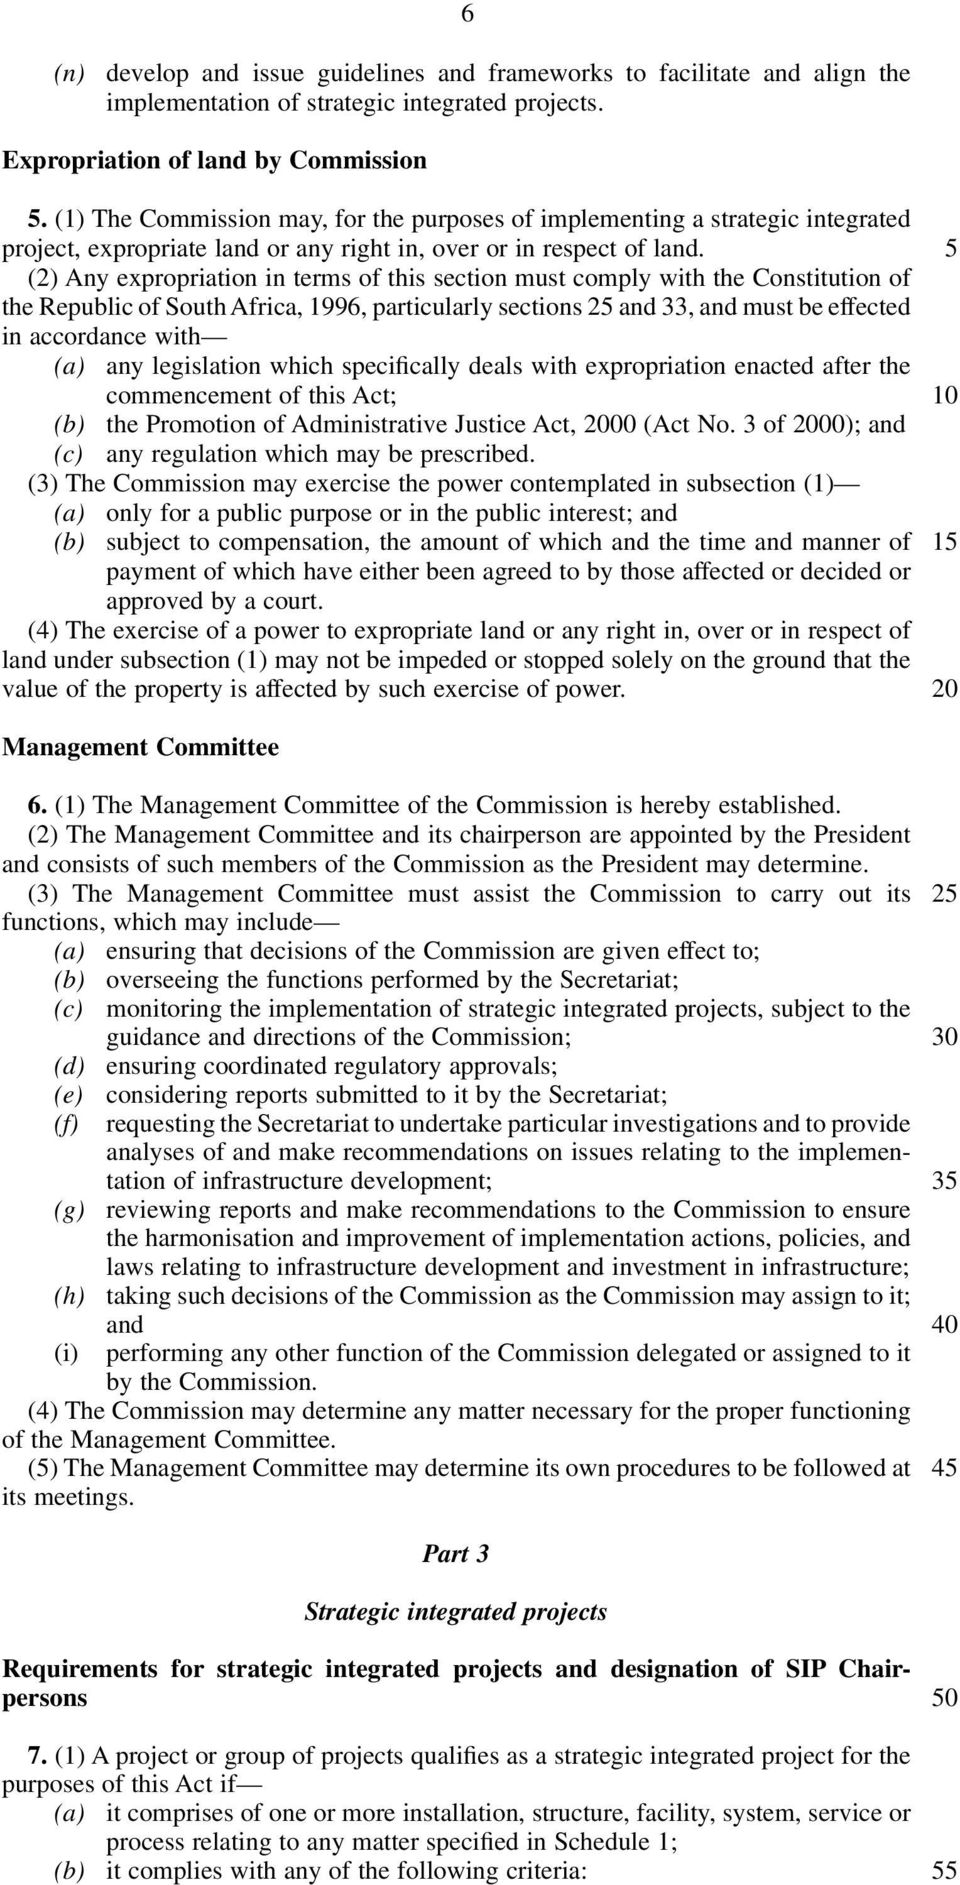 (2) Any expropriation in terms of this section must comply with the Constitution of the Republic of South Africa, 1996, particularly sections 2 and 33, and must be effected in accordance with (a) any